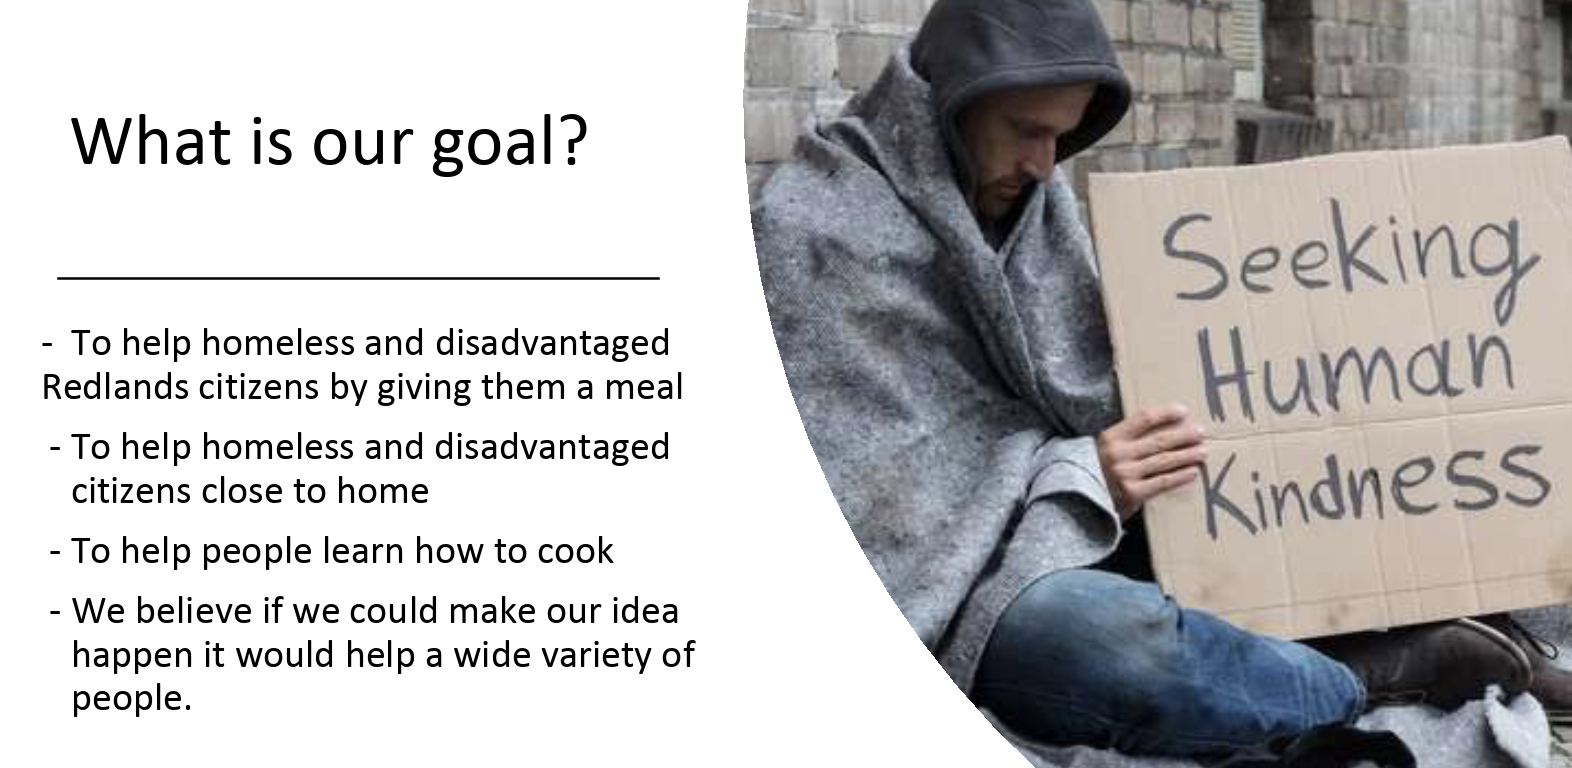 A slide explaining our goal - to help homeless citizens in the local area, teach community members how to cook, bring both groups together.